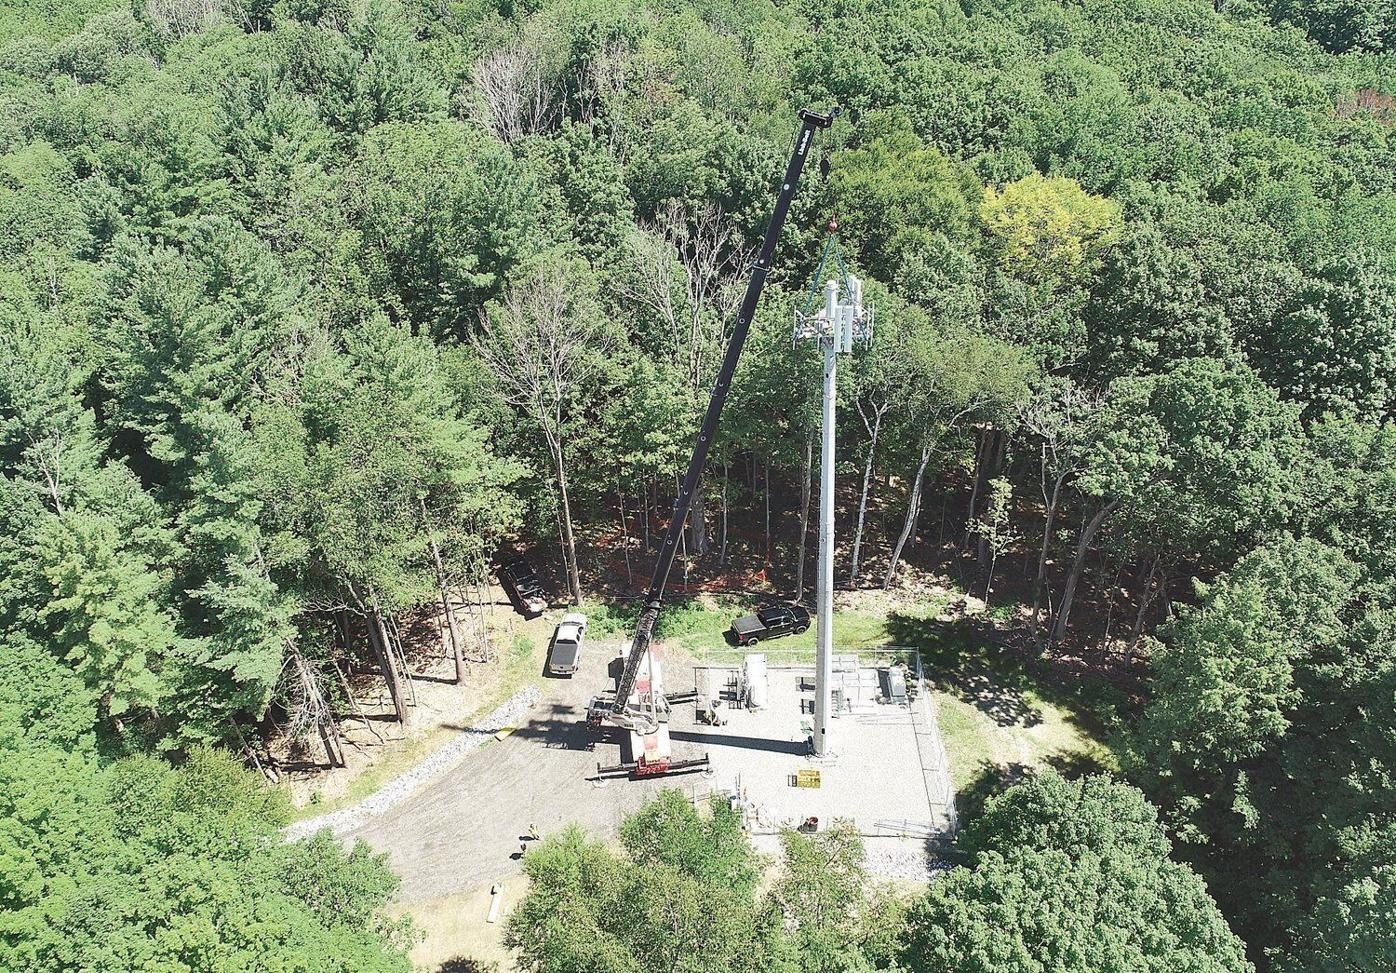 Ruling goes against Pittsfield cell tower neighbors, but fight might continue (copy)